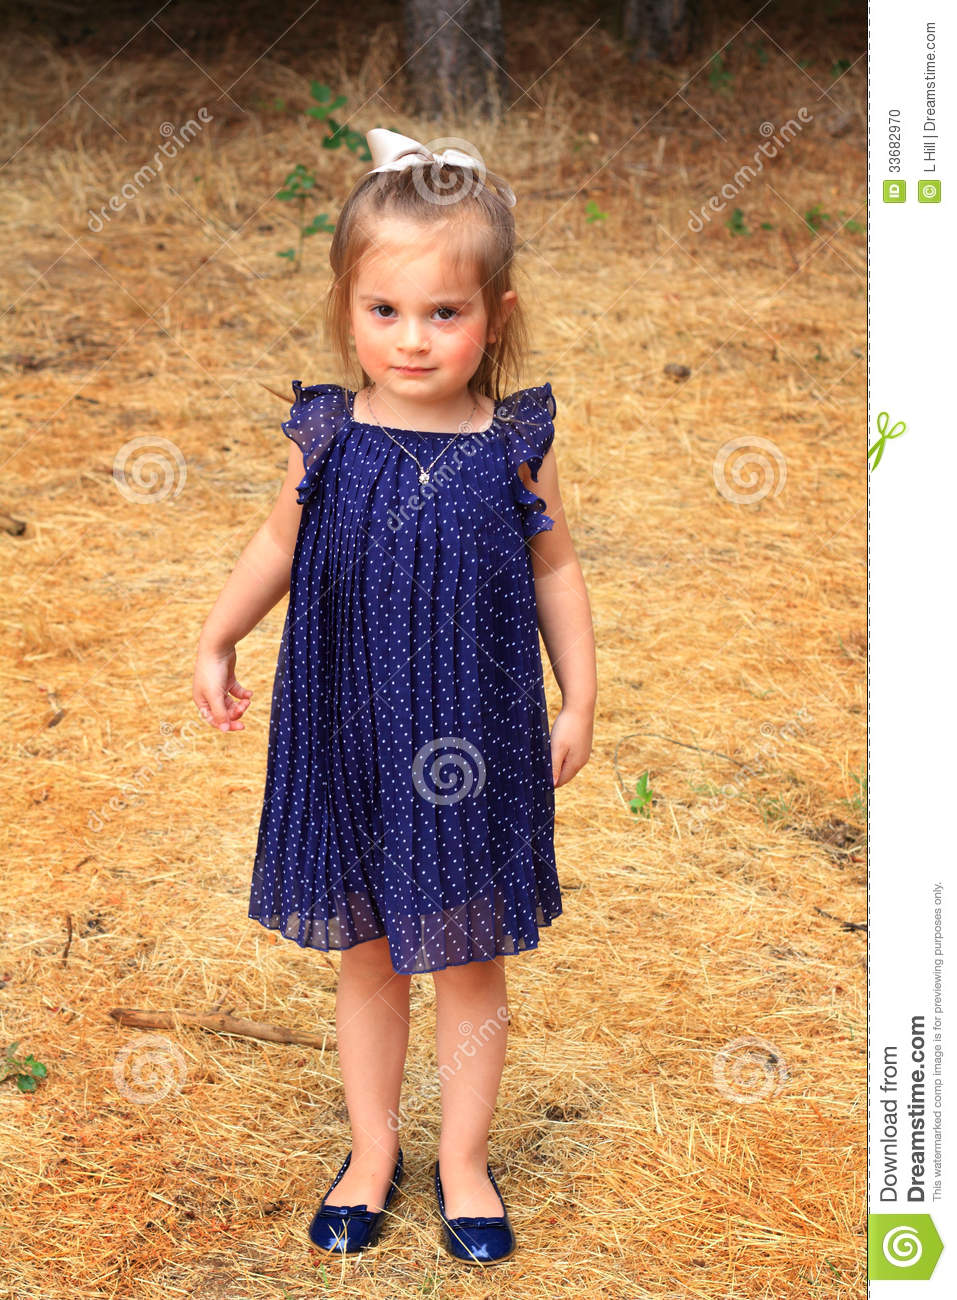 Unique Girl Dressed Up As Dorothy From Oz Royalty Free Stock Photography